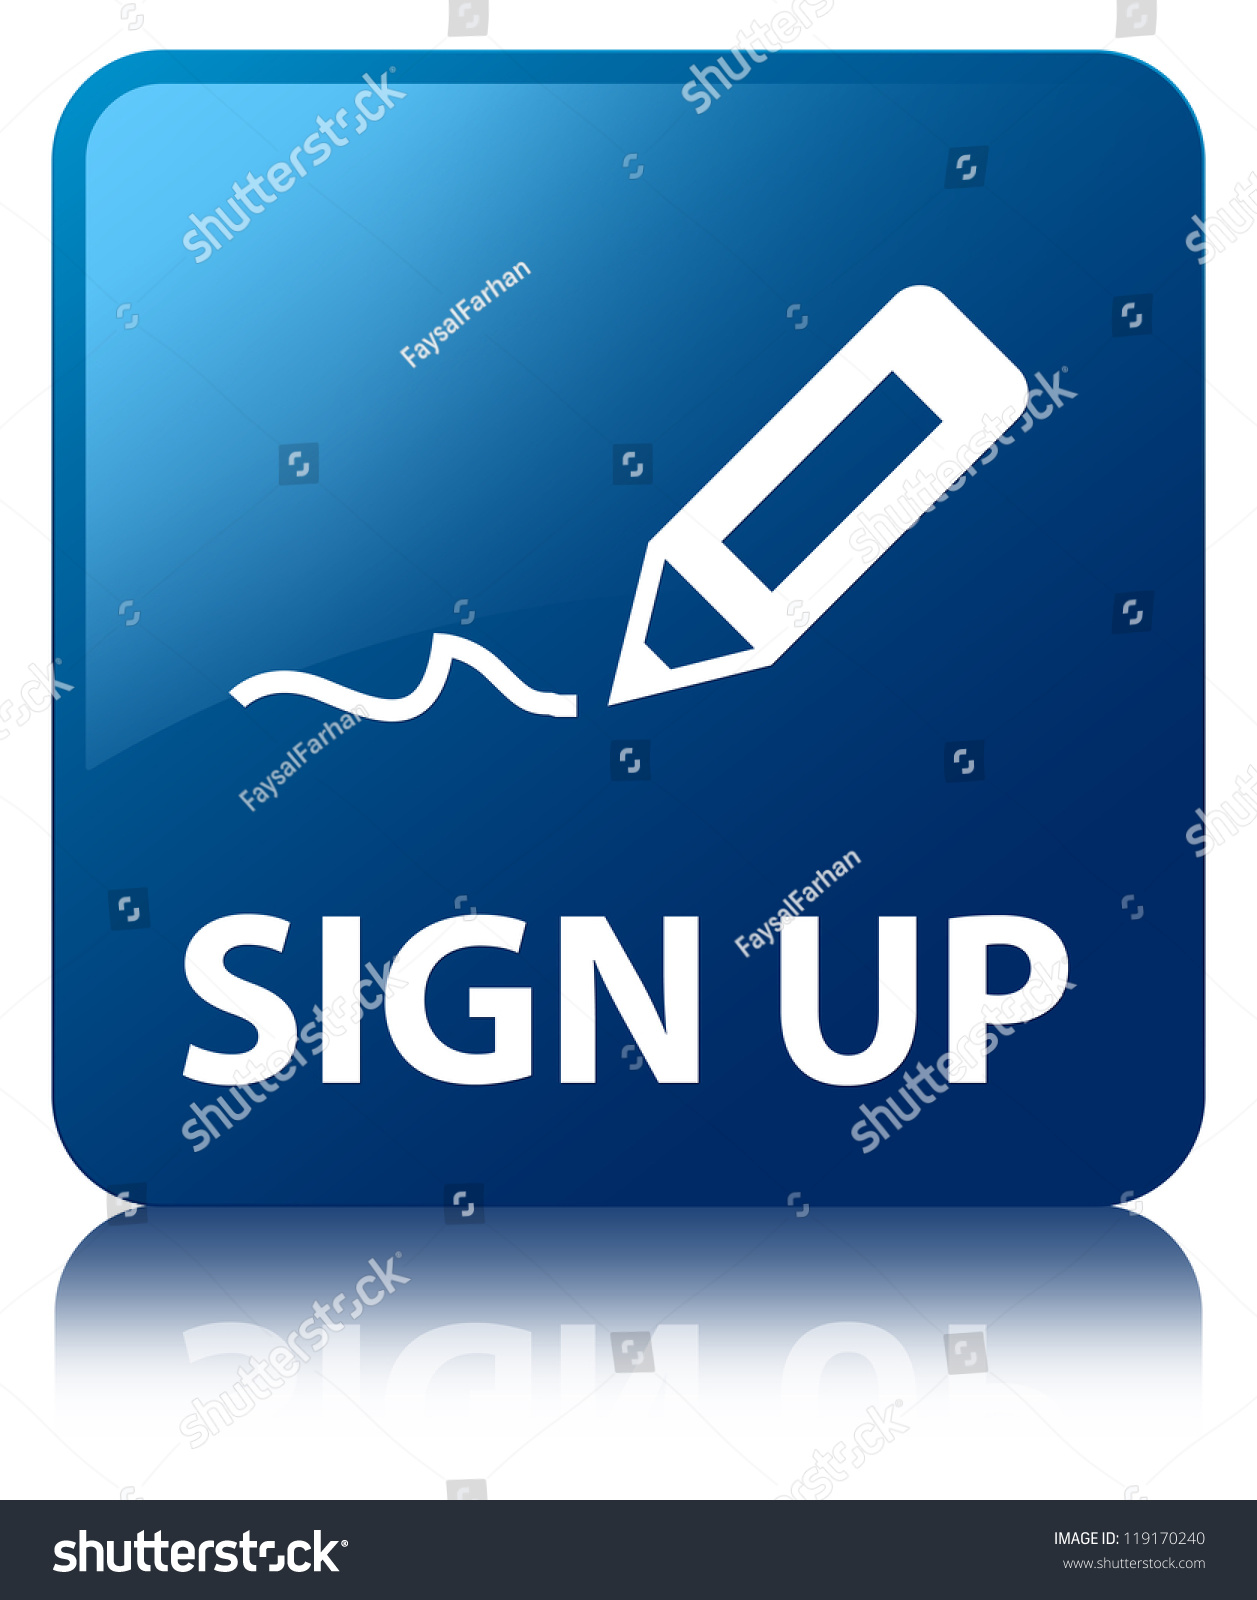 Sign Up Glossy Blue Reflected Square Button Stock Photo ...